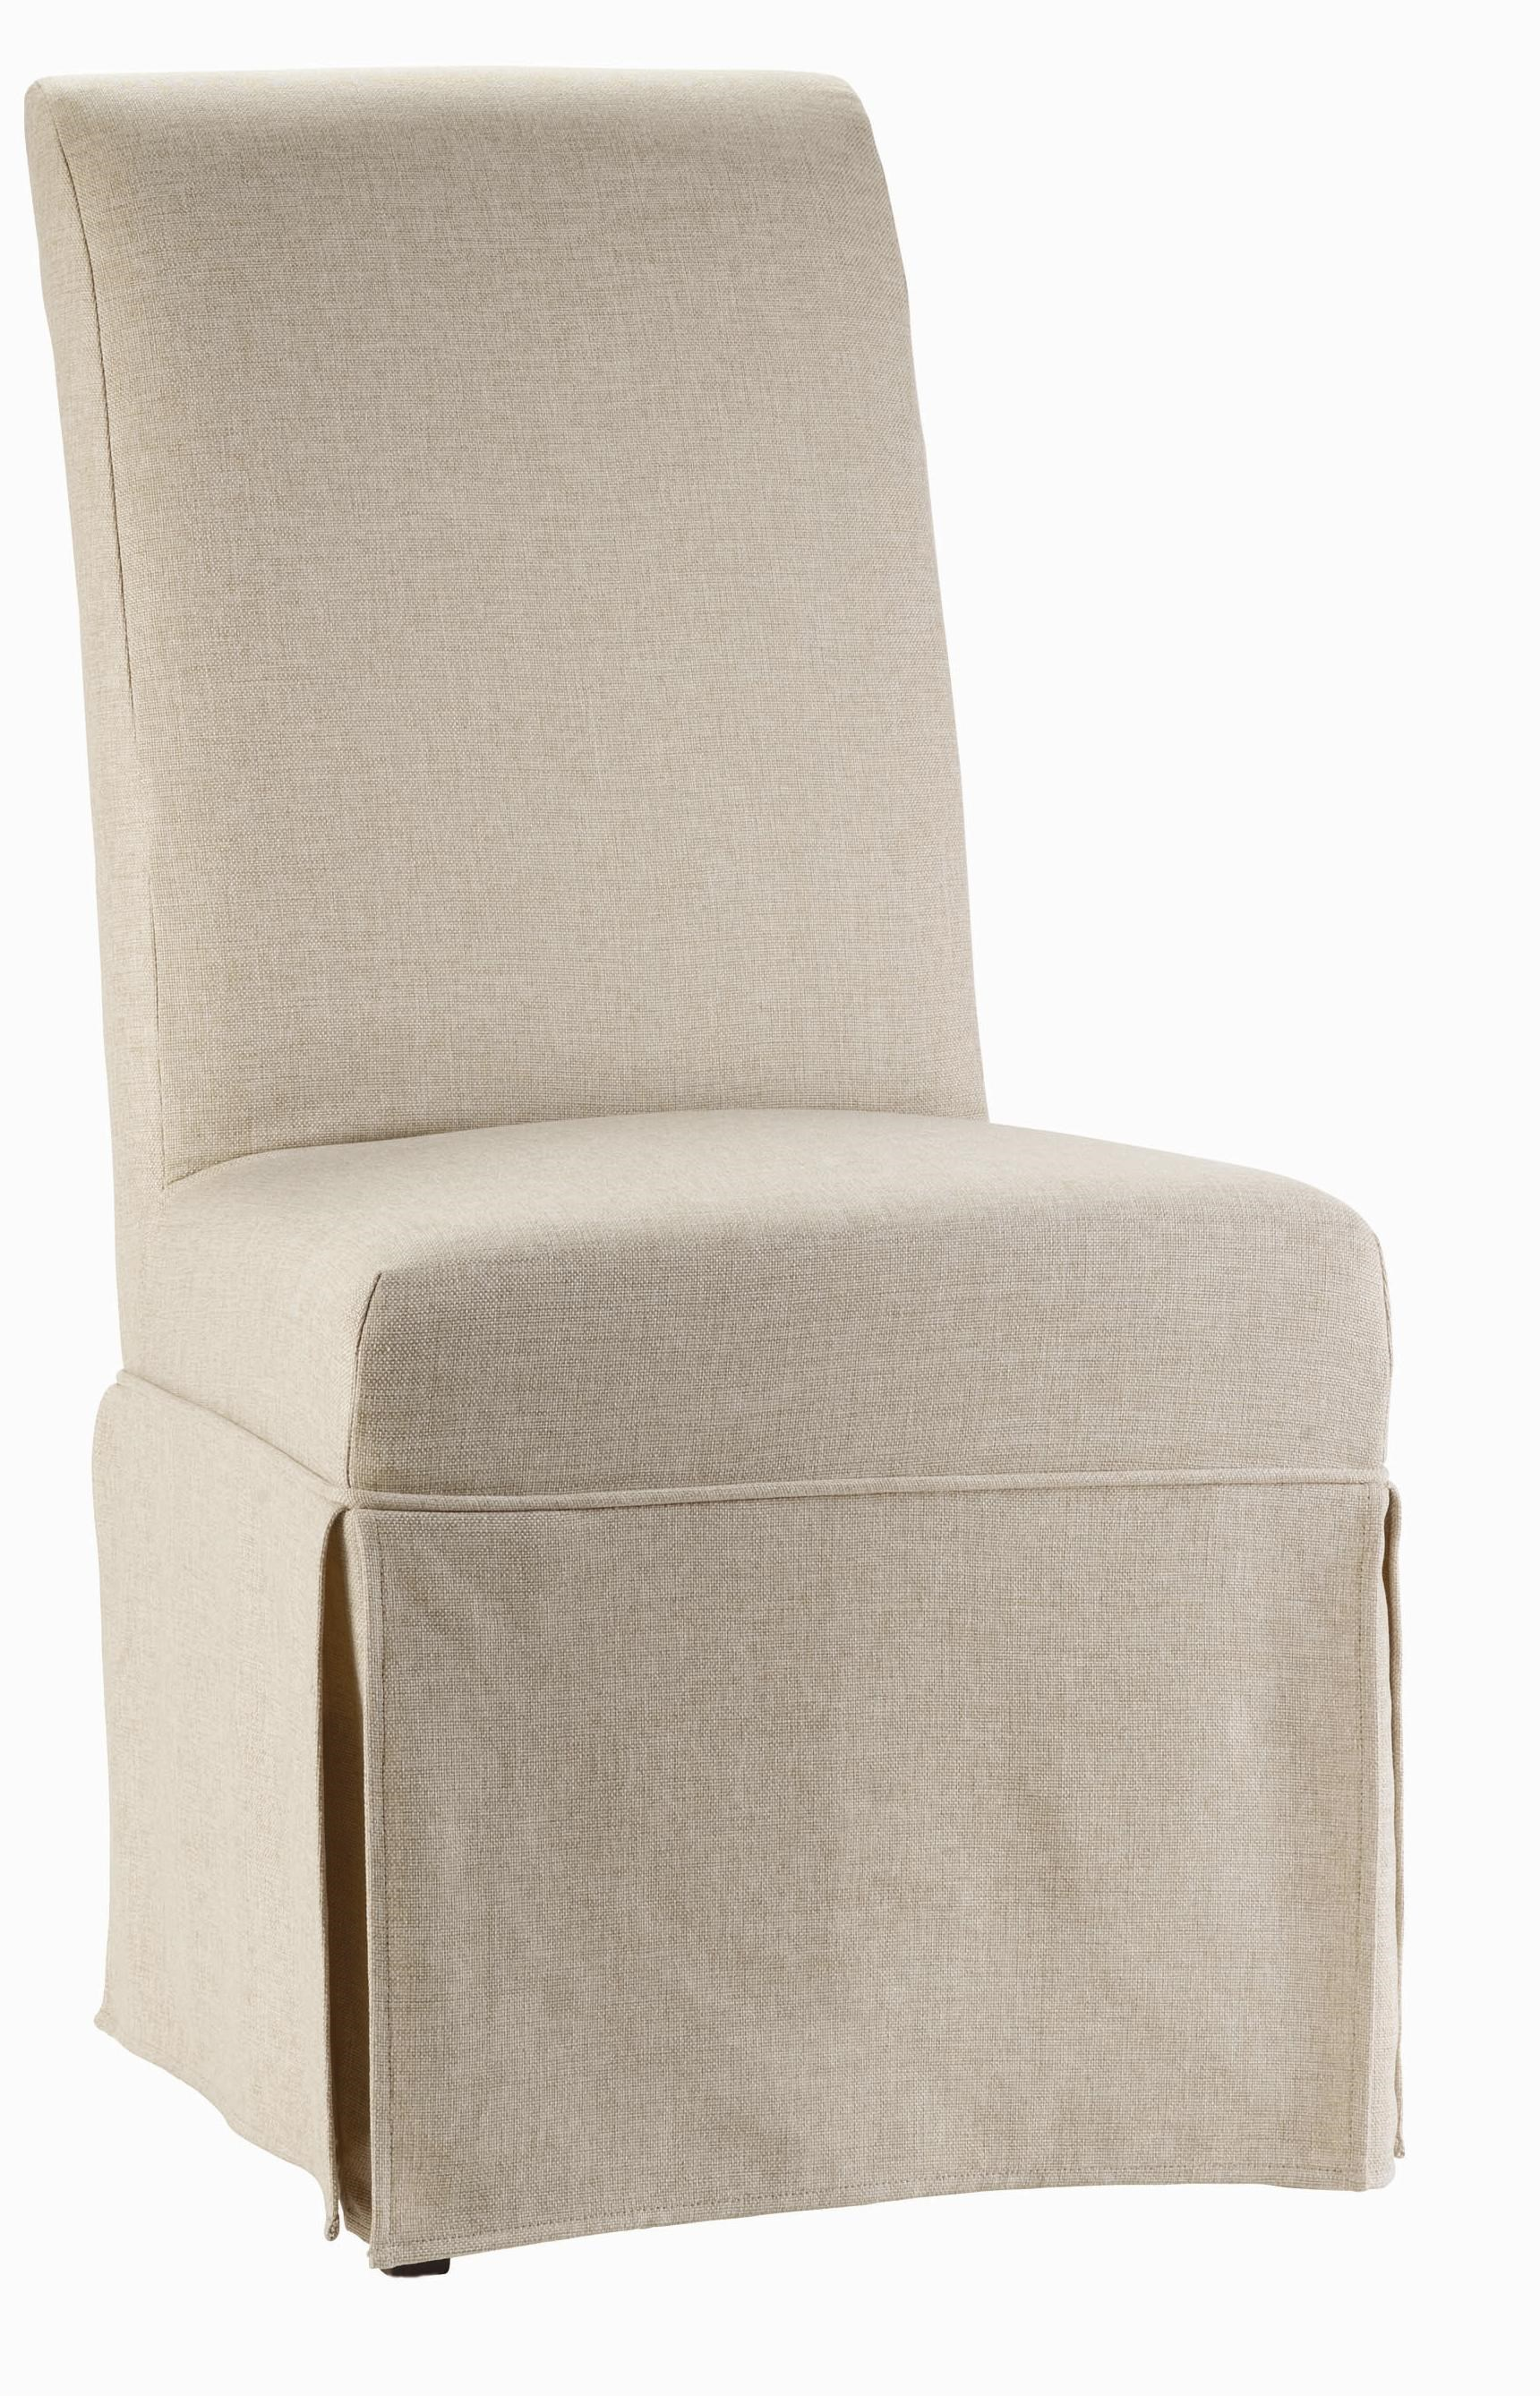 Hooker Furniture SanctuaryClarice Skirted Chair ...